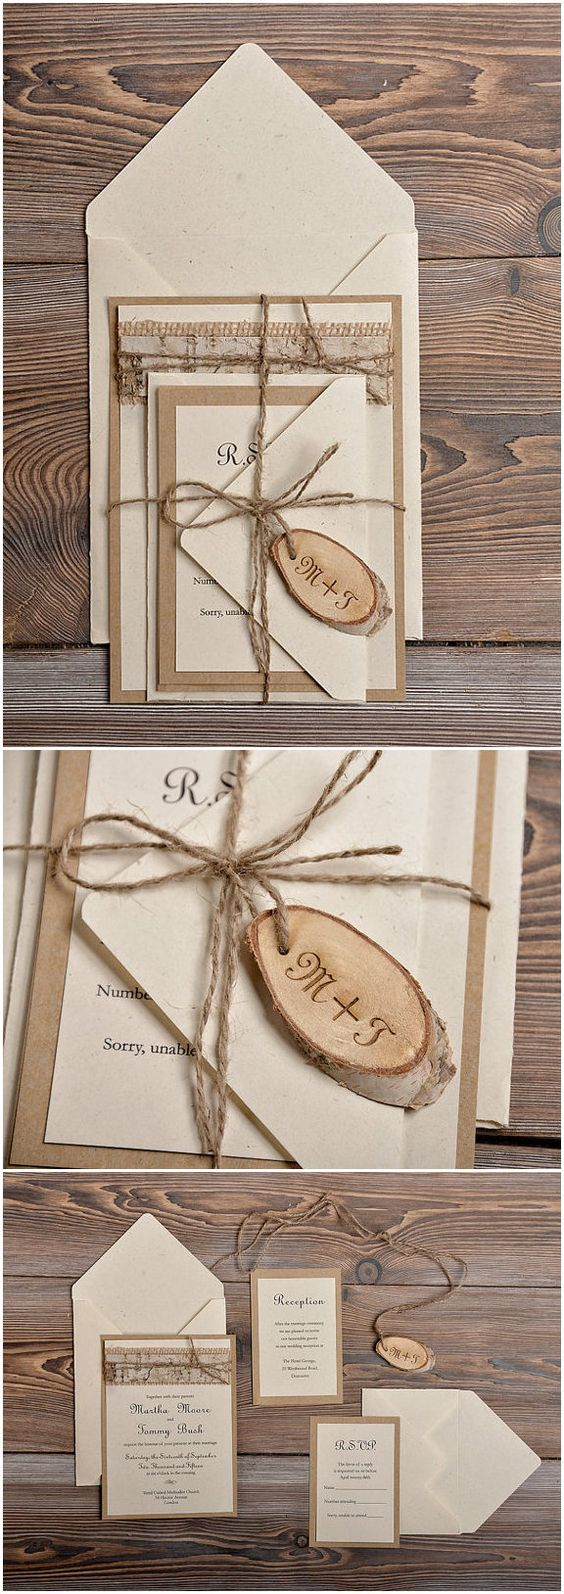 top 10 rustic wedding invitations to wow your guests birch bark barking fc and birch - Country Rustic Wedding Invitations